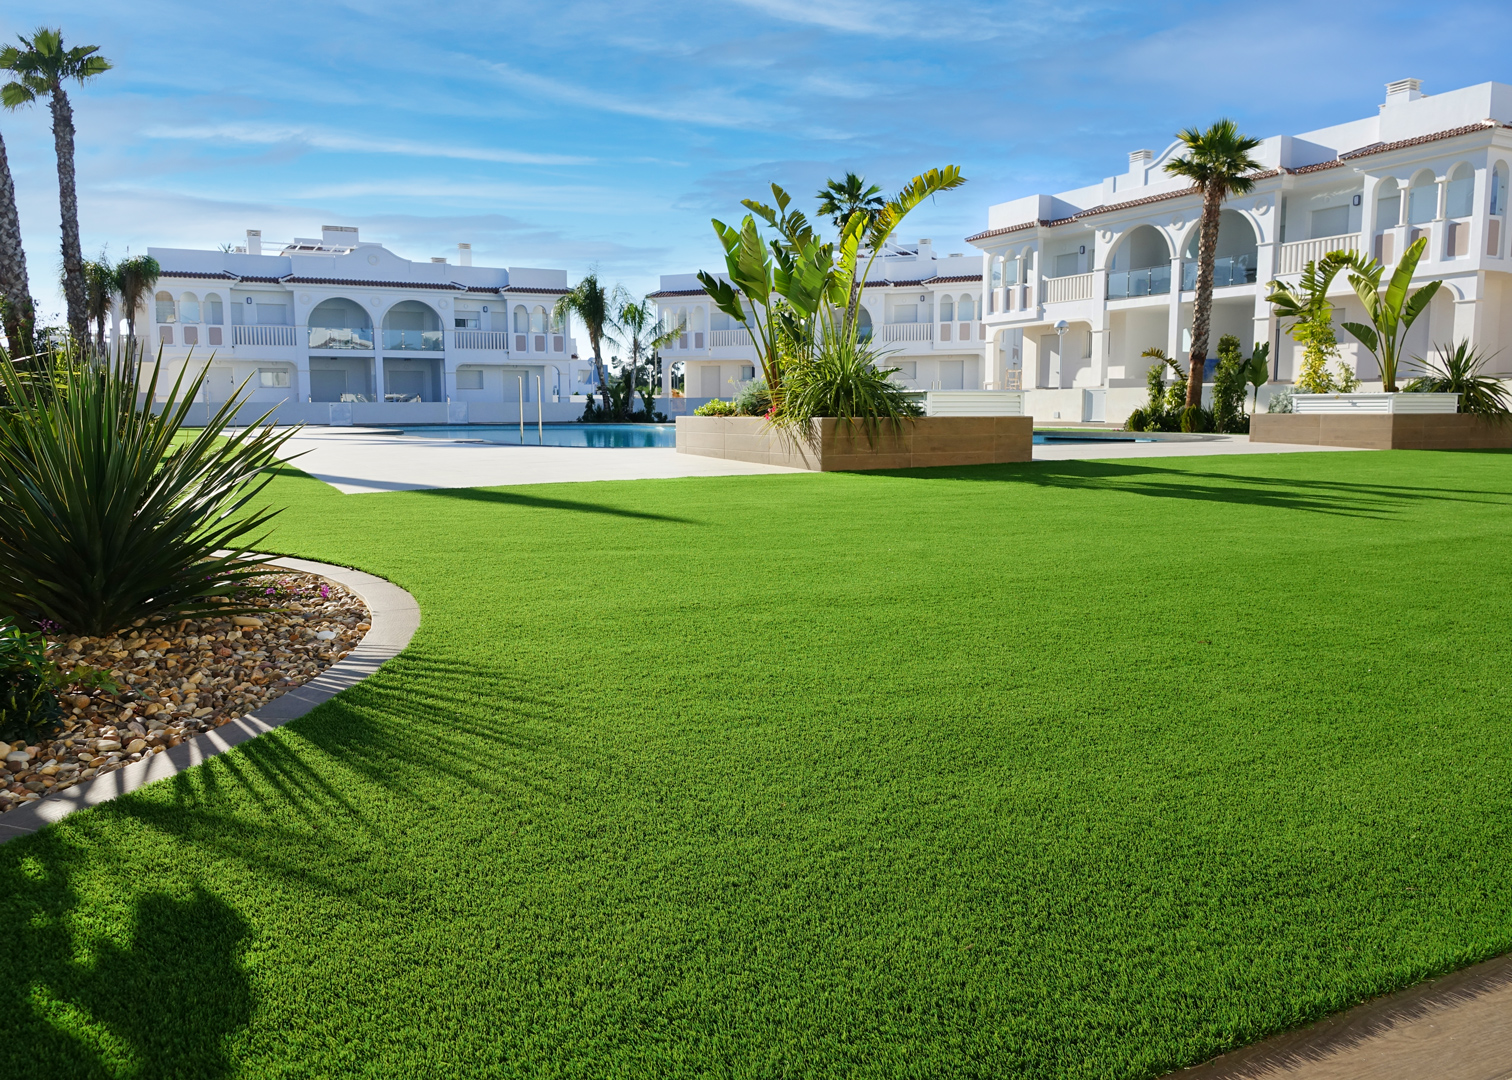 Césped artificial residencial Romeo